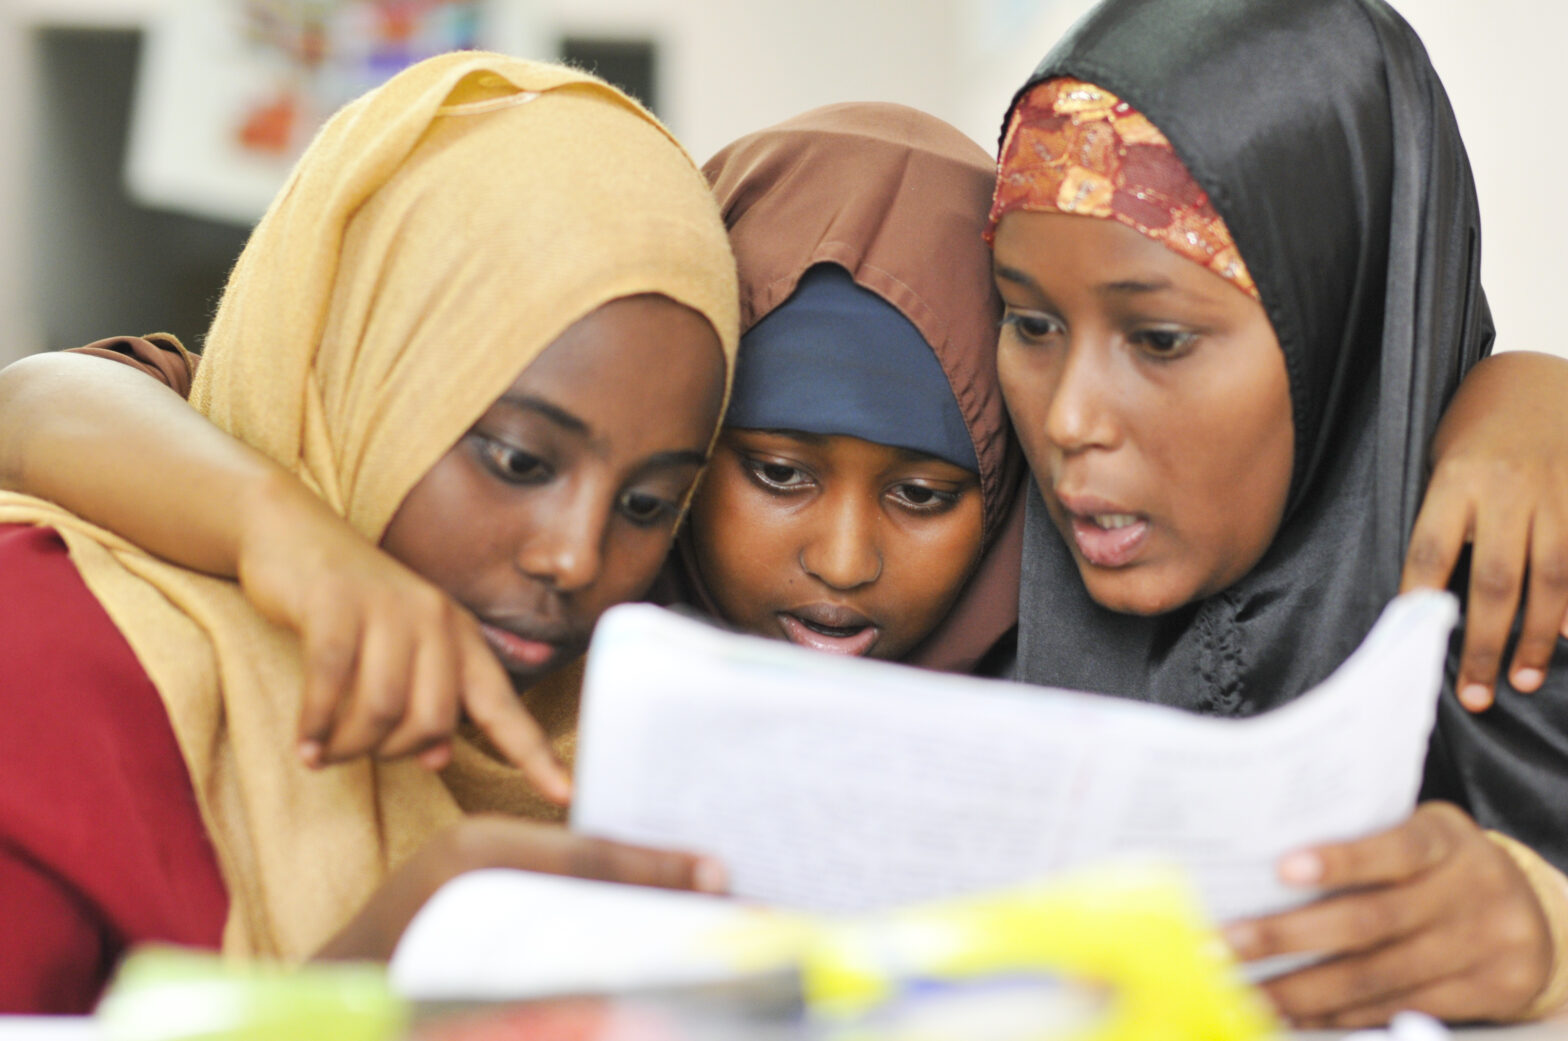 Long-Term Effects of COVID-19 on Refugee Girls' Education Part II of II: Solutions for Equal Access